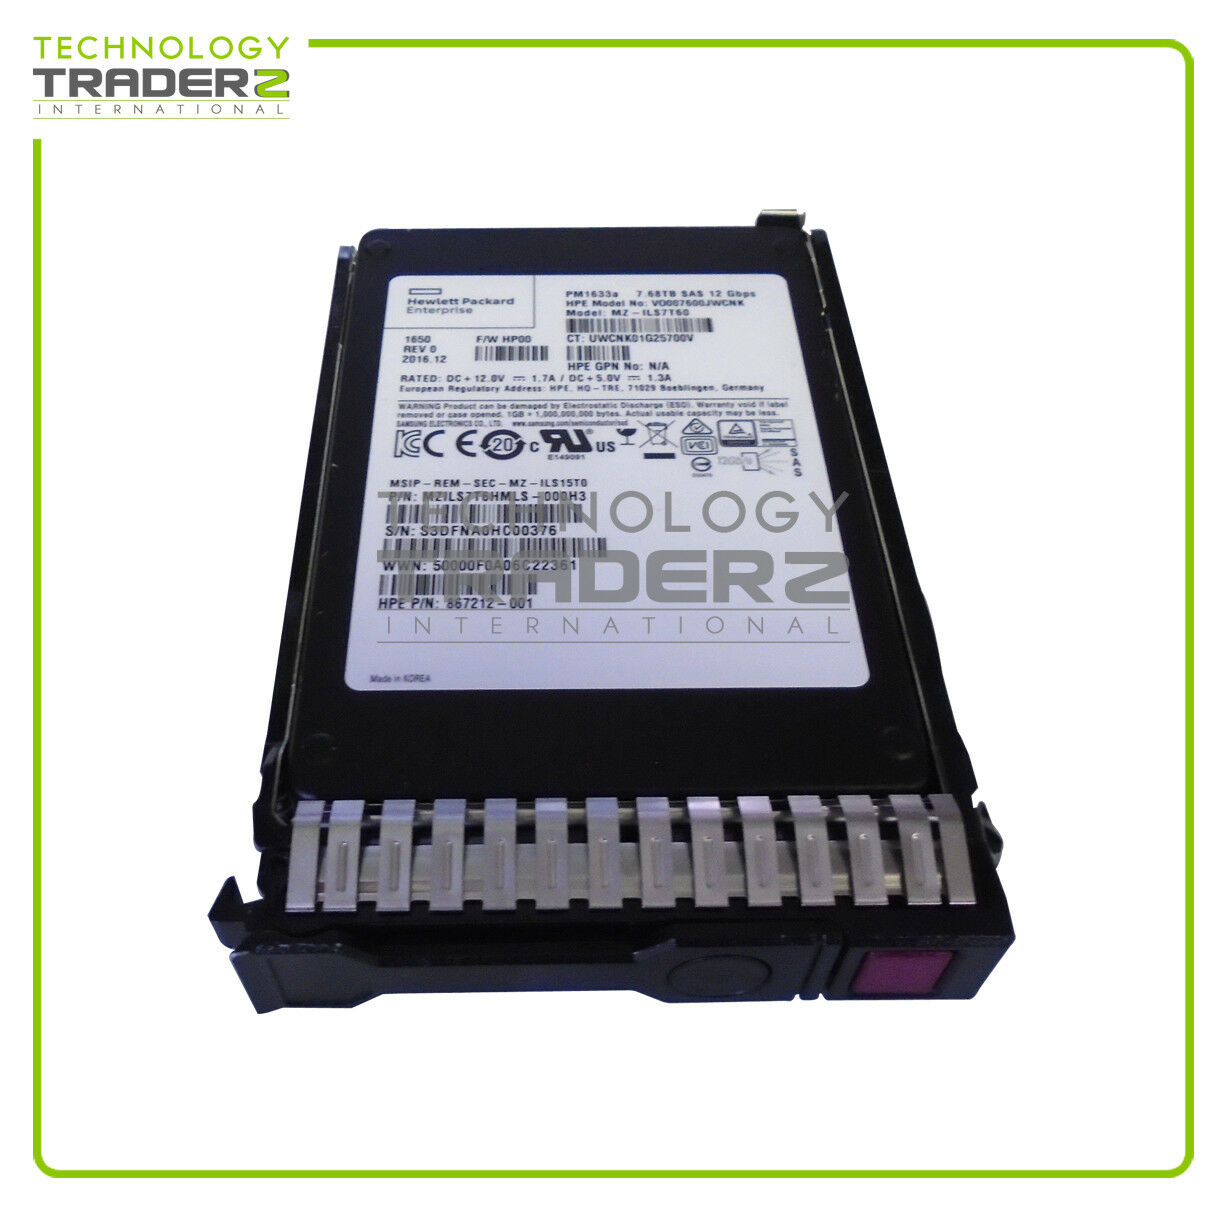 870144-B21 HP 7.68TB SAS 12G 2.5-inch Solid State Drive 867212-001